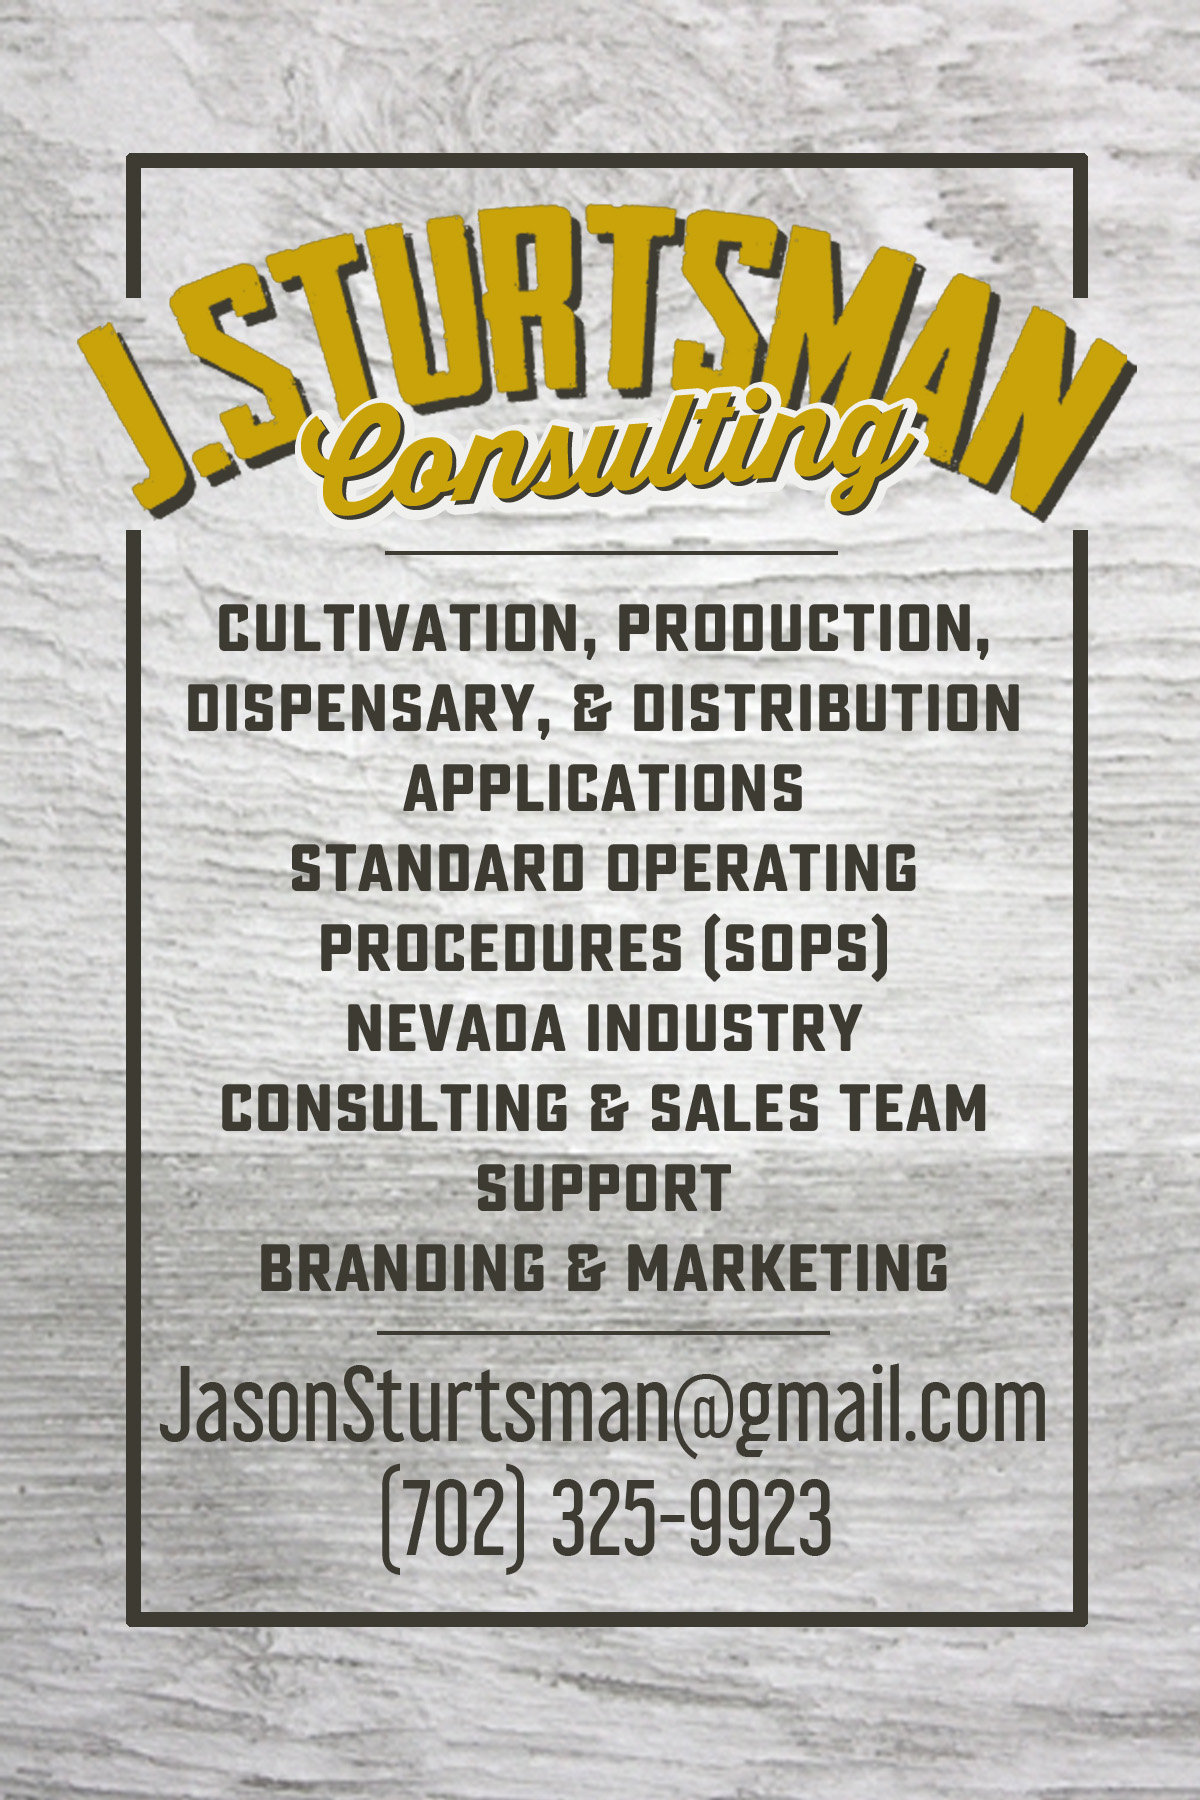 jsturtsmanConsulting